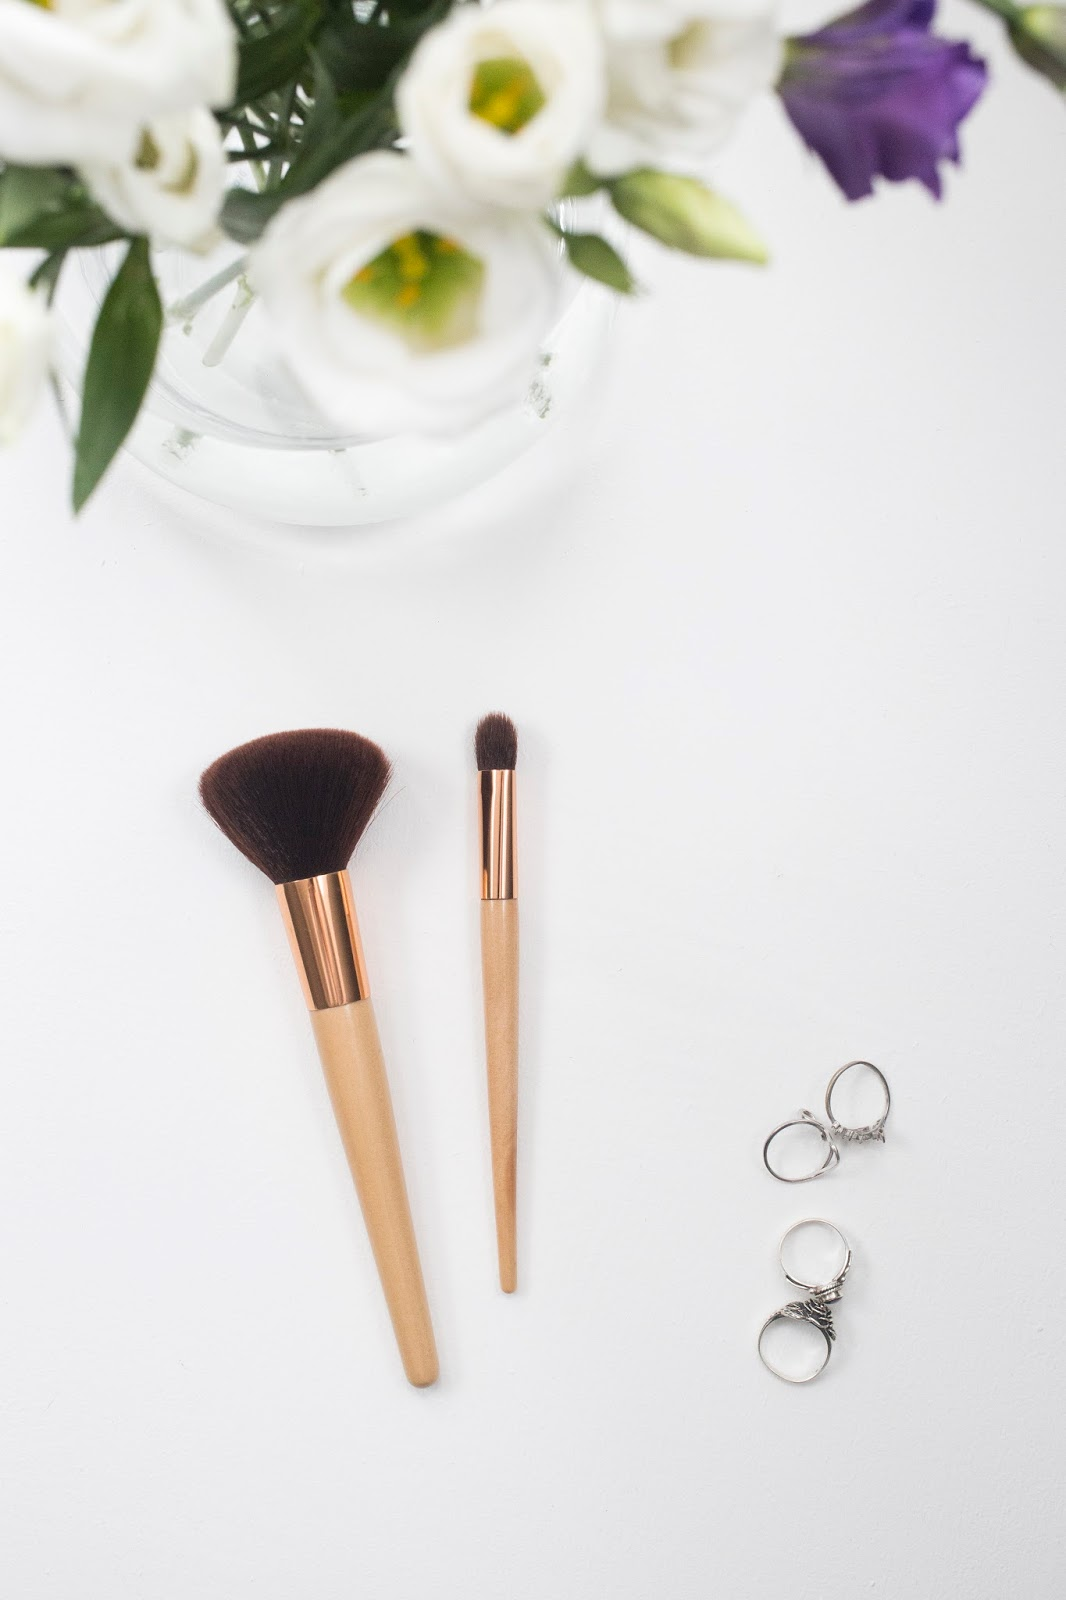 Flawless Nature Make-up Brushes | My thoughts